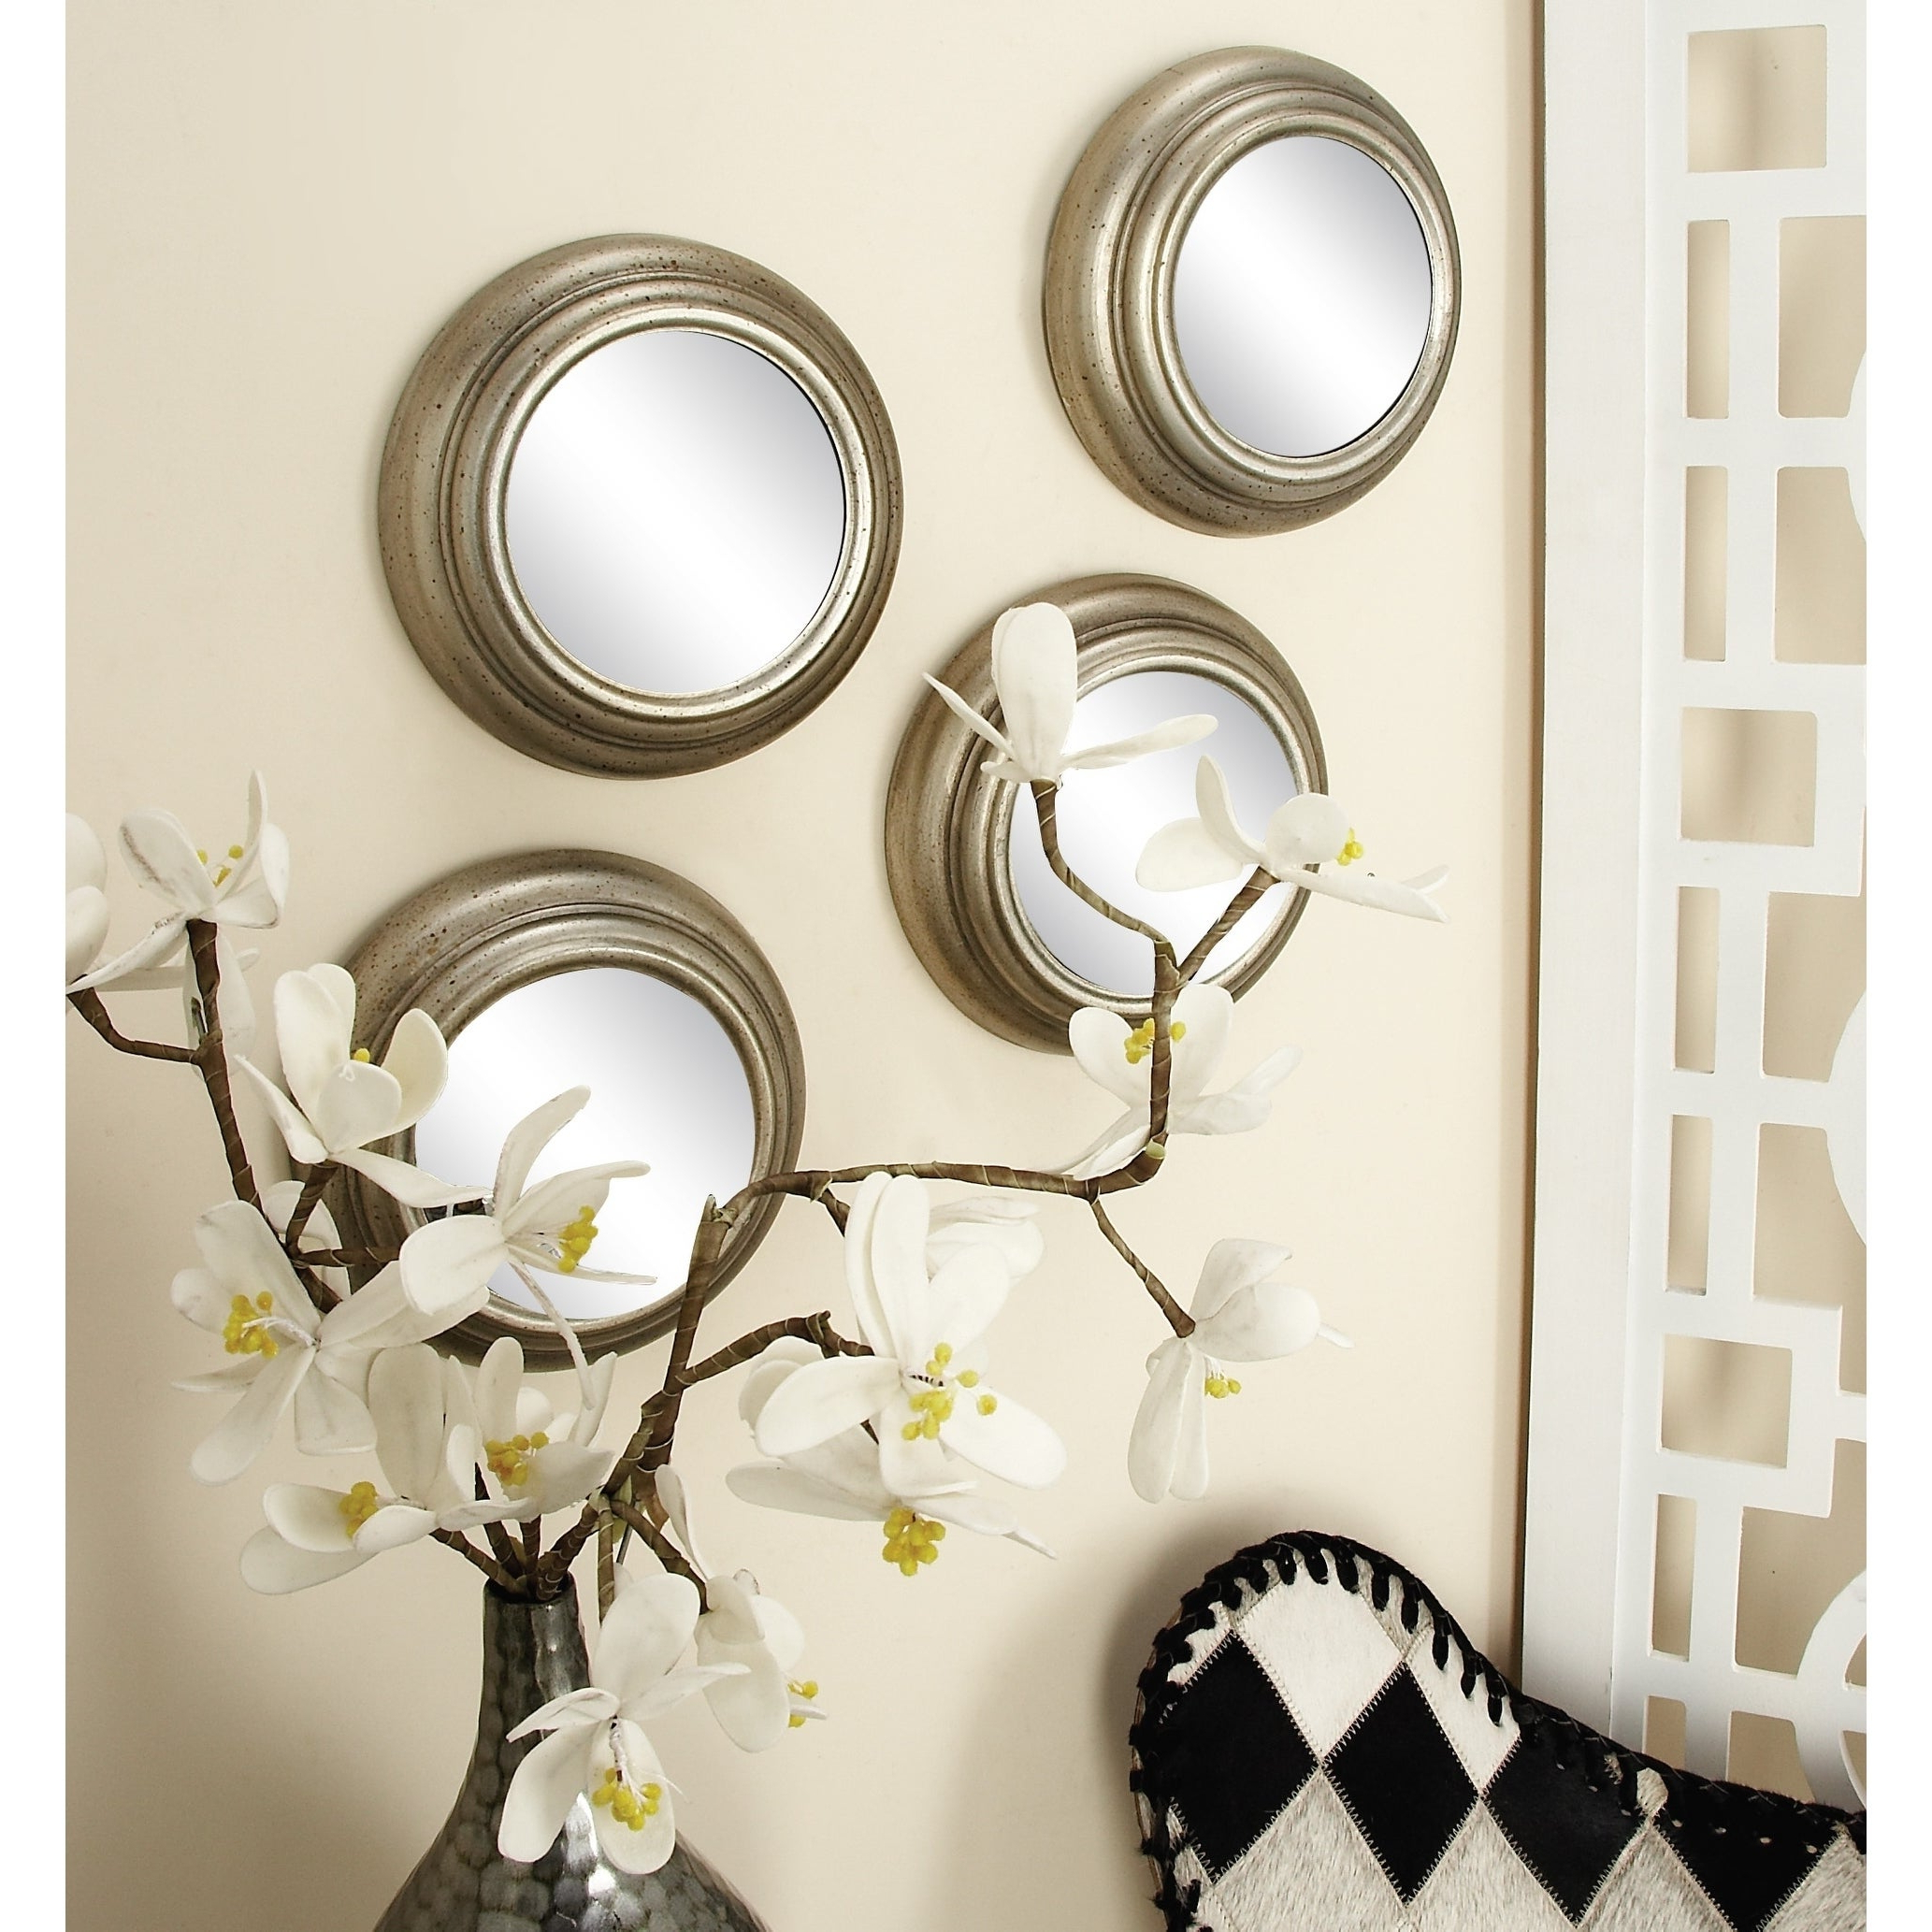 Set Of 12 Contemporary Round Decorative Wall Mirrorsstudio 350 – Silver For 2020 Decorative Round Wall Mirrors (Gallery 10 of 20)